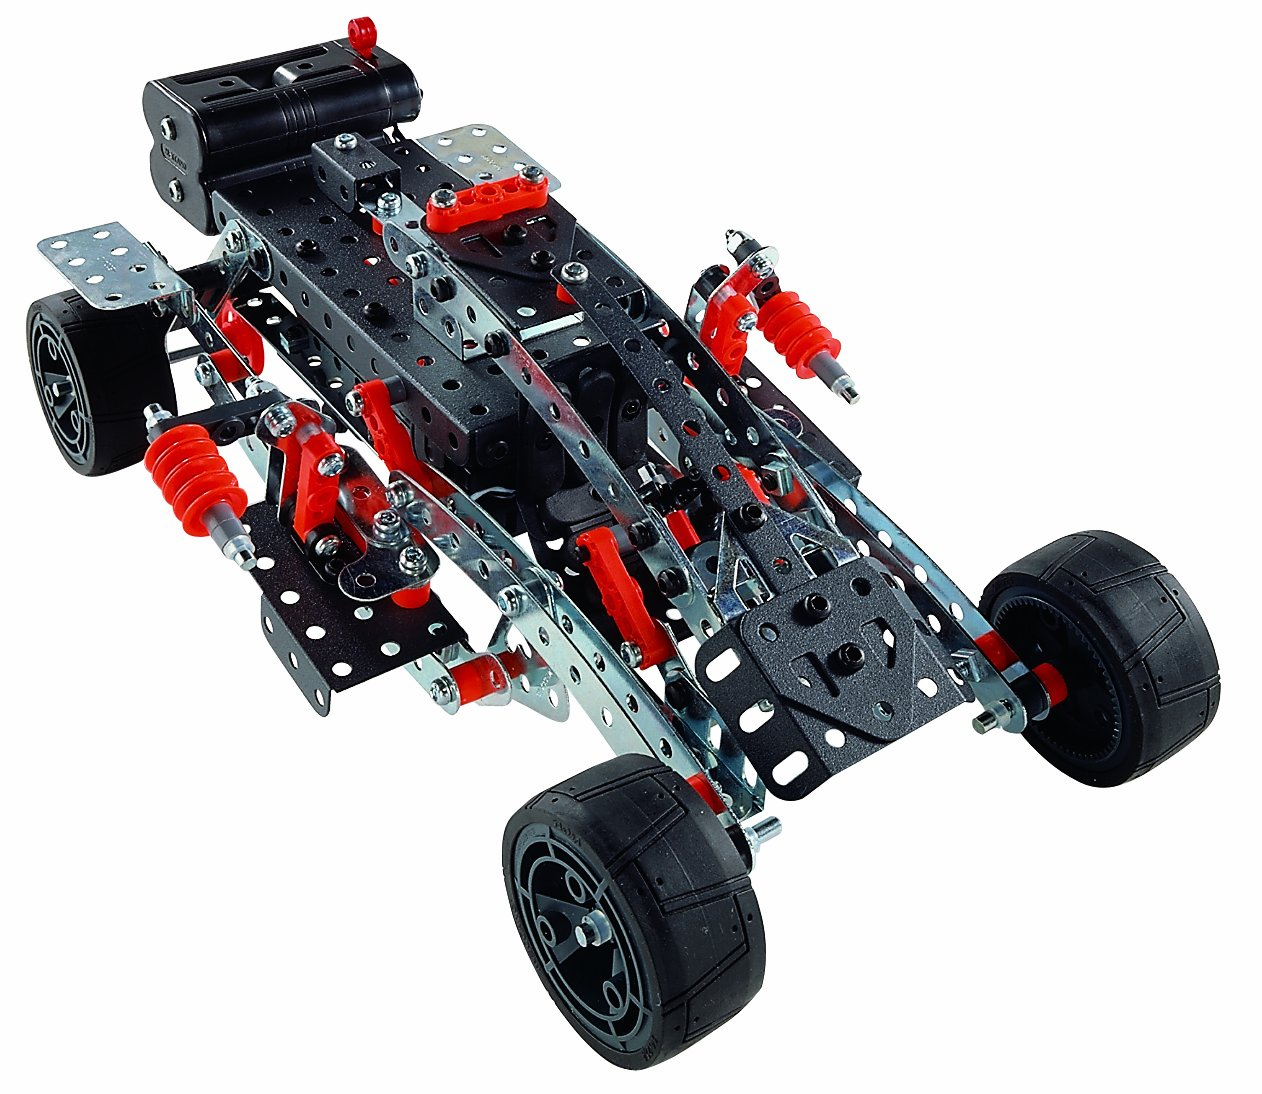 Amazon erector by meccano super construction set 25 motorized amazon erector by meccano super construction set 25 motorized model building set 638 pieces for ages 10 and up stem education toy toys games fandeluxe Images